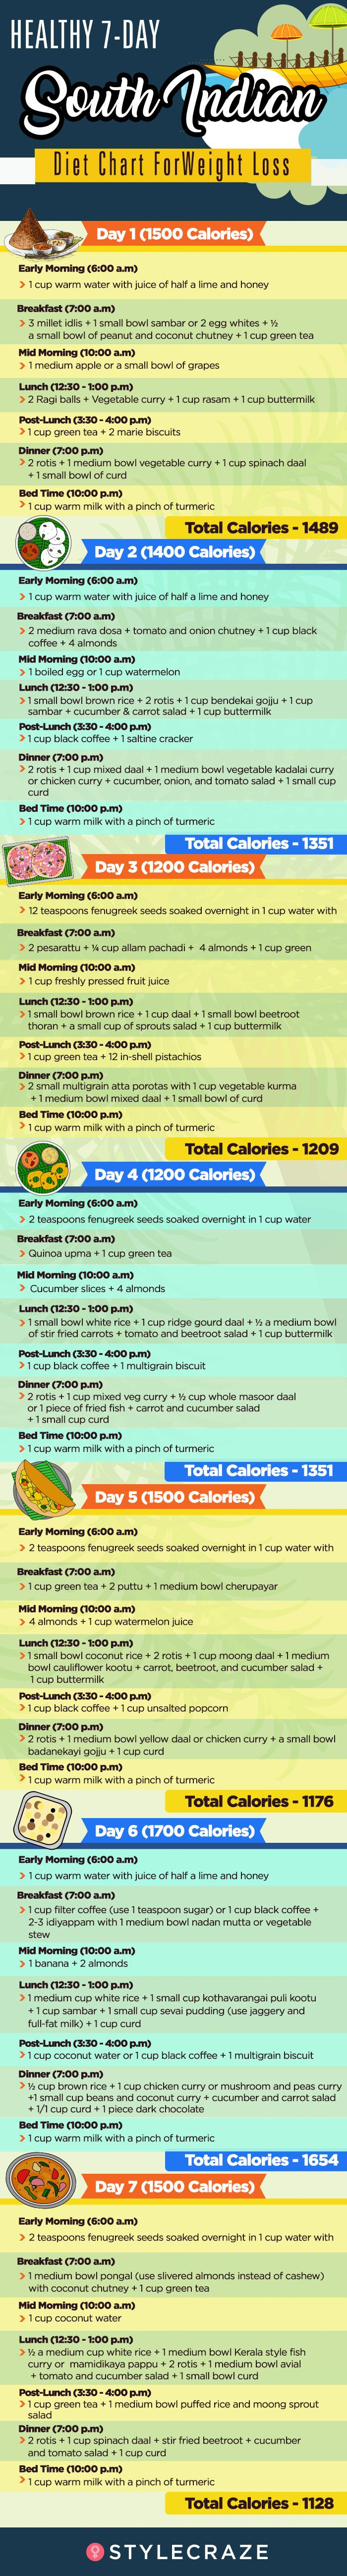 Diet routine for weight loss india